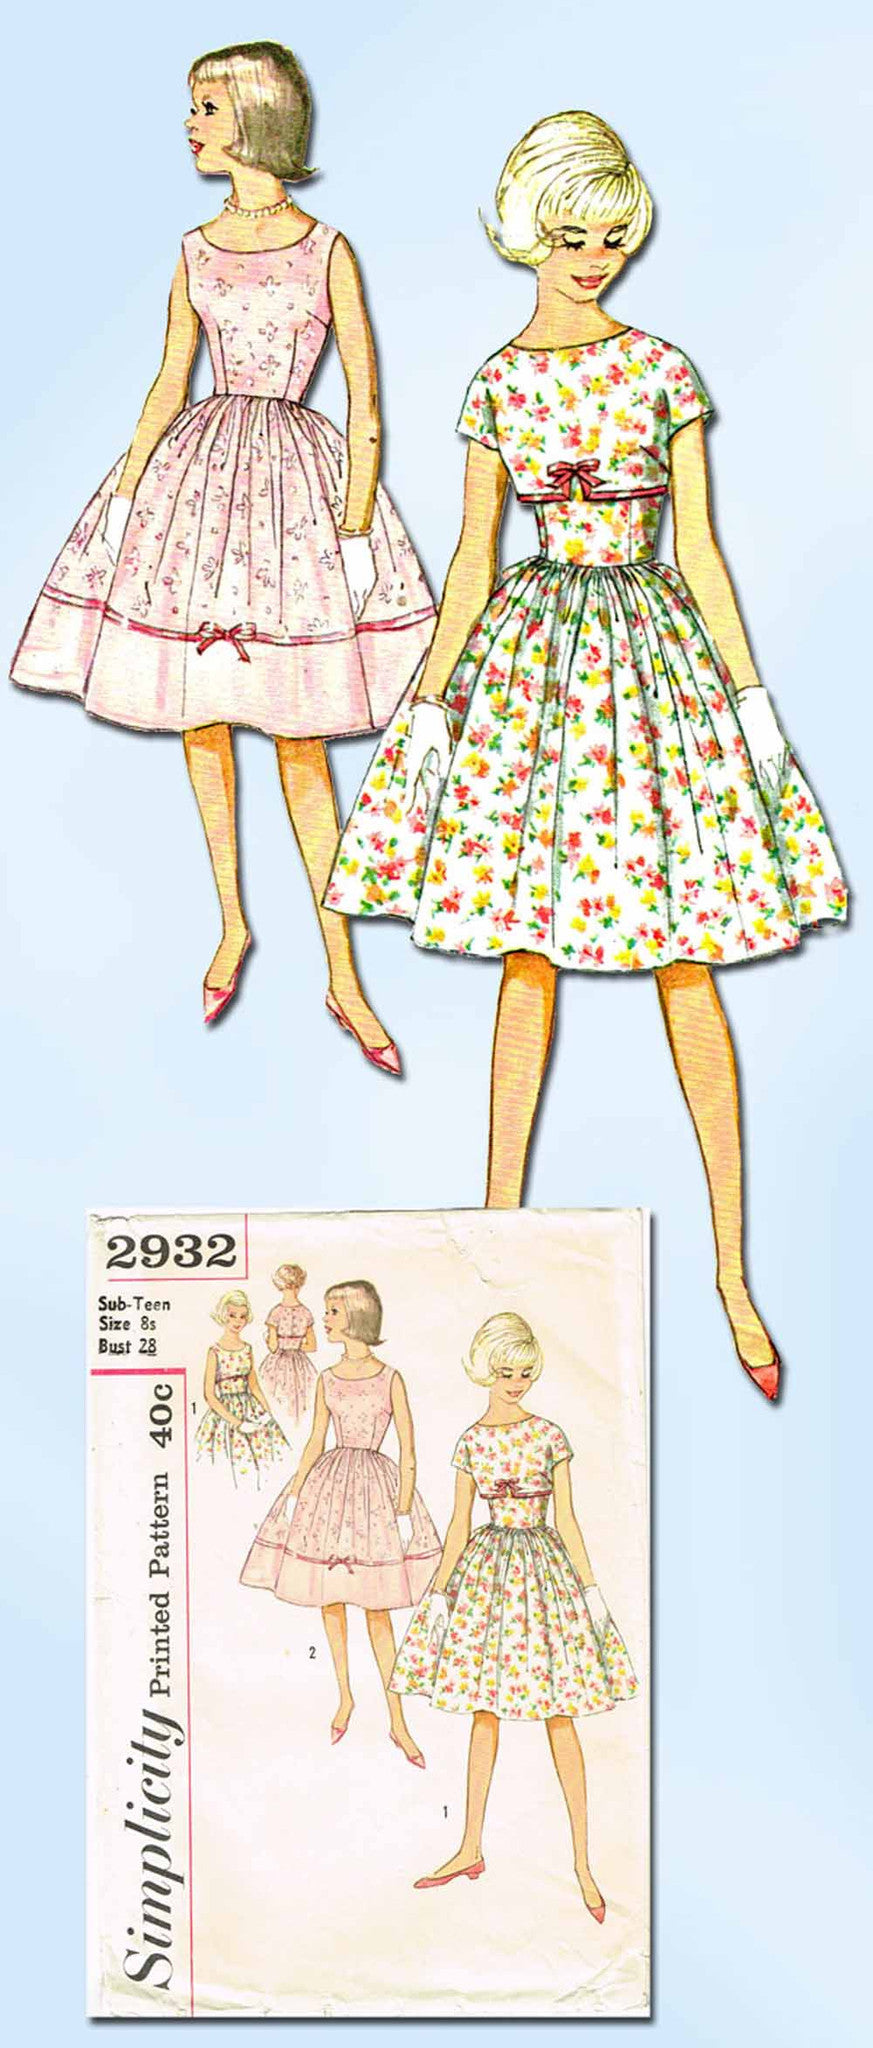 1950s Vintage Simplicity Sewing Pattern 2932 Sub Teen